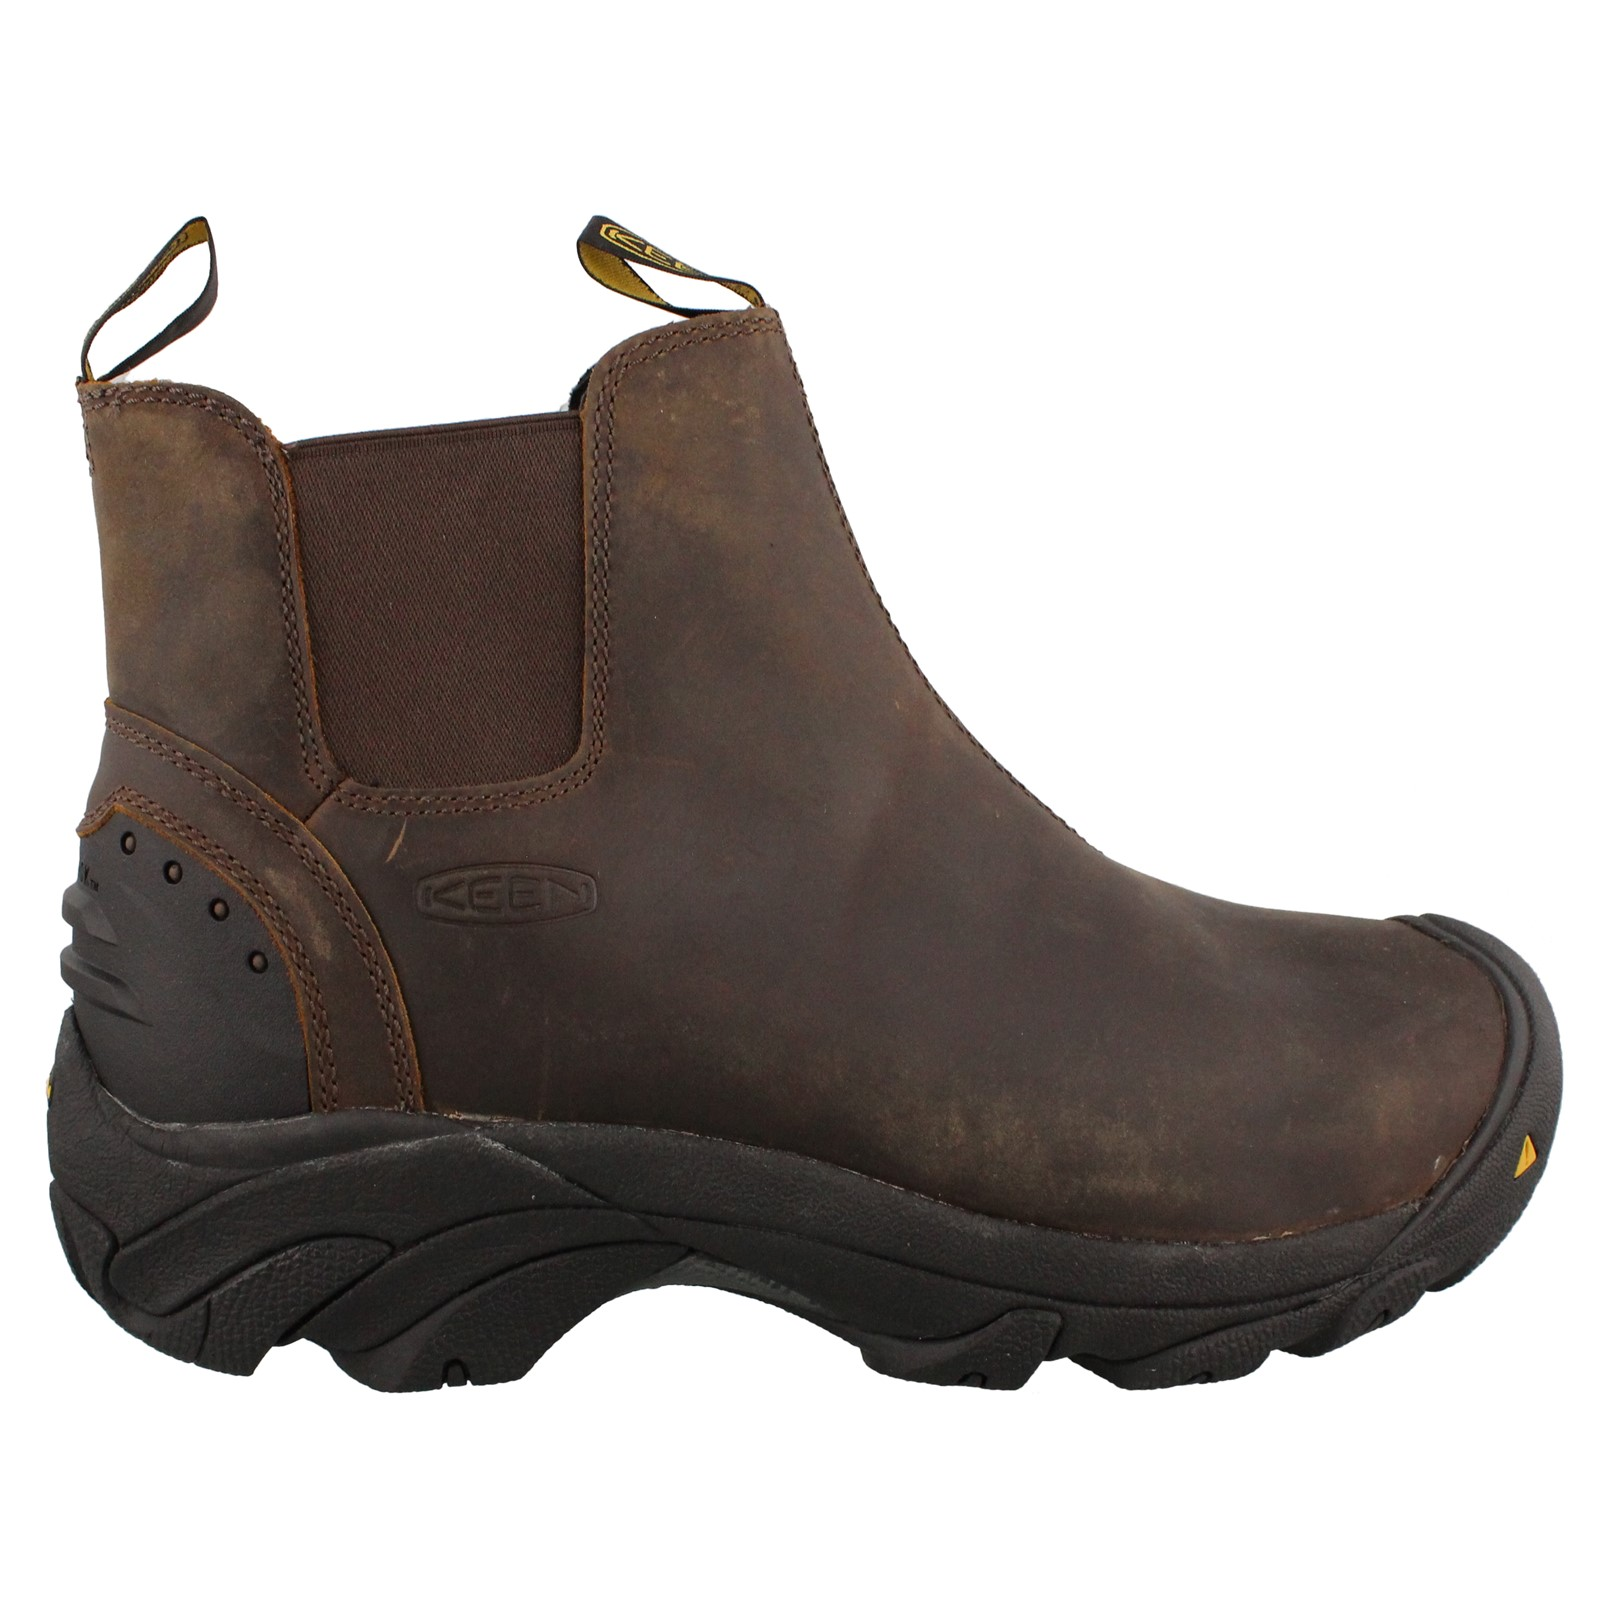 4daface176 Home; Men's Keen, Detroit Slip on Steel Toe Boot. Previous. default view ...